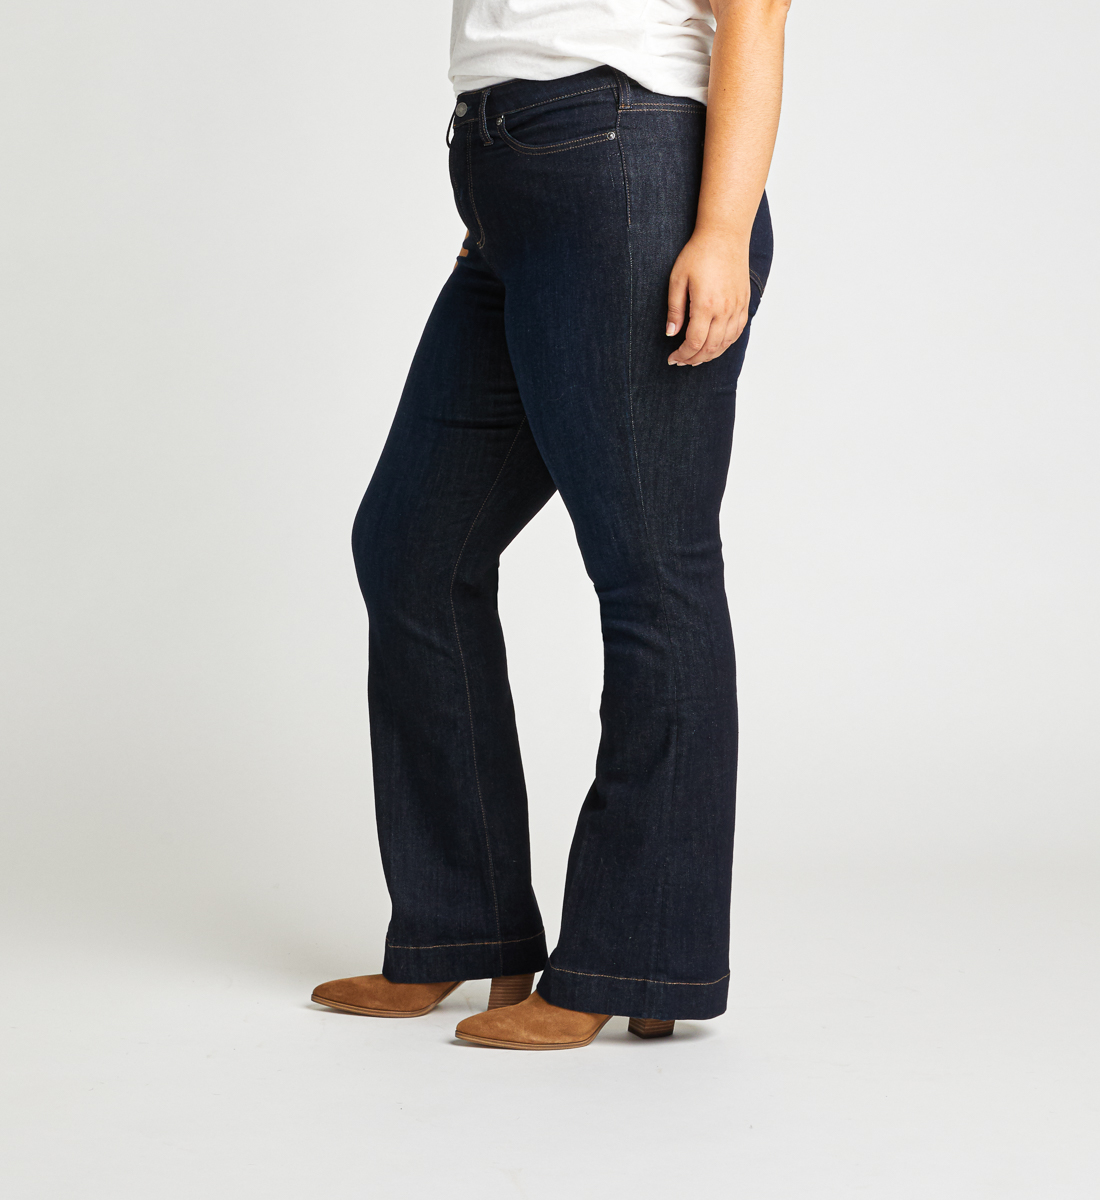 High Note High Rise Trouser Plus Size Jeans Side